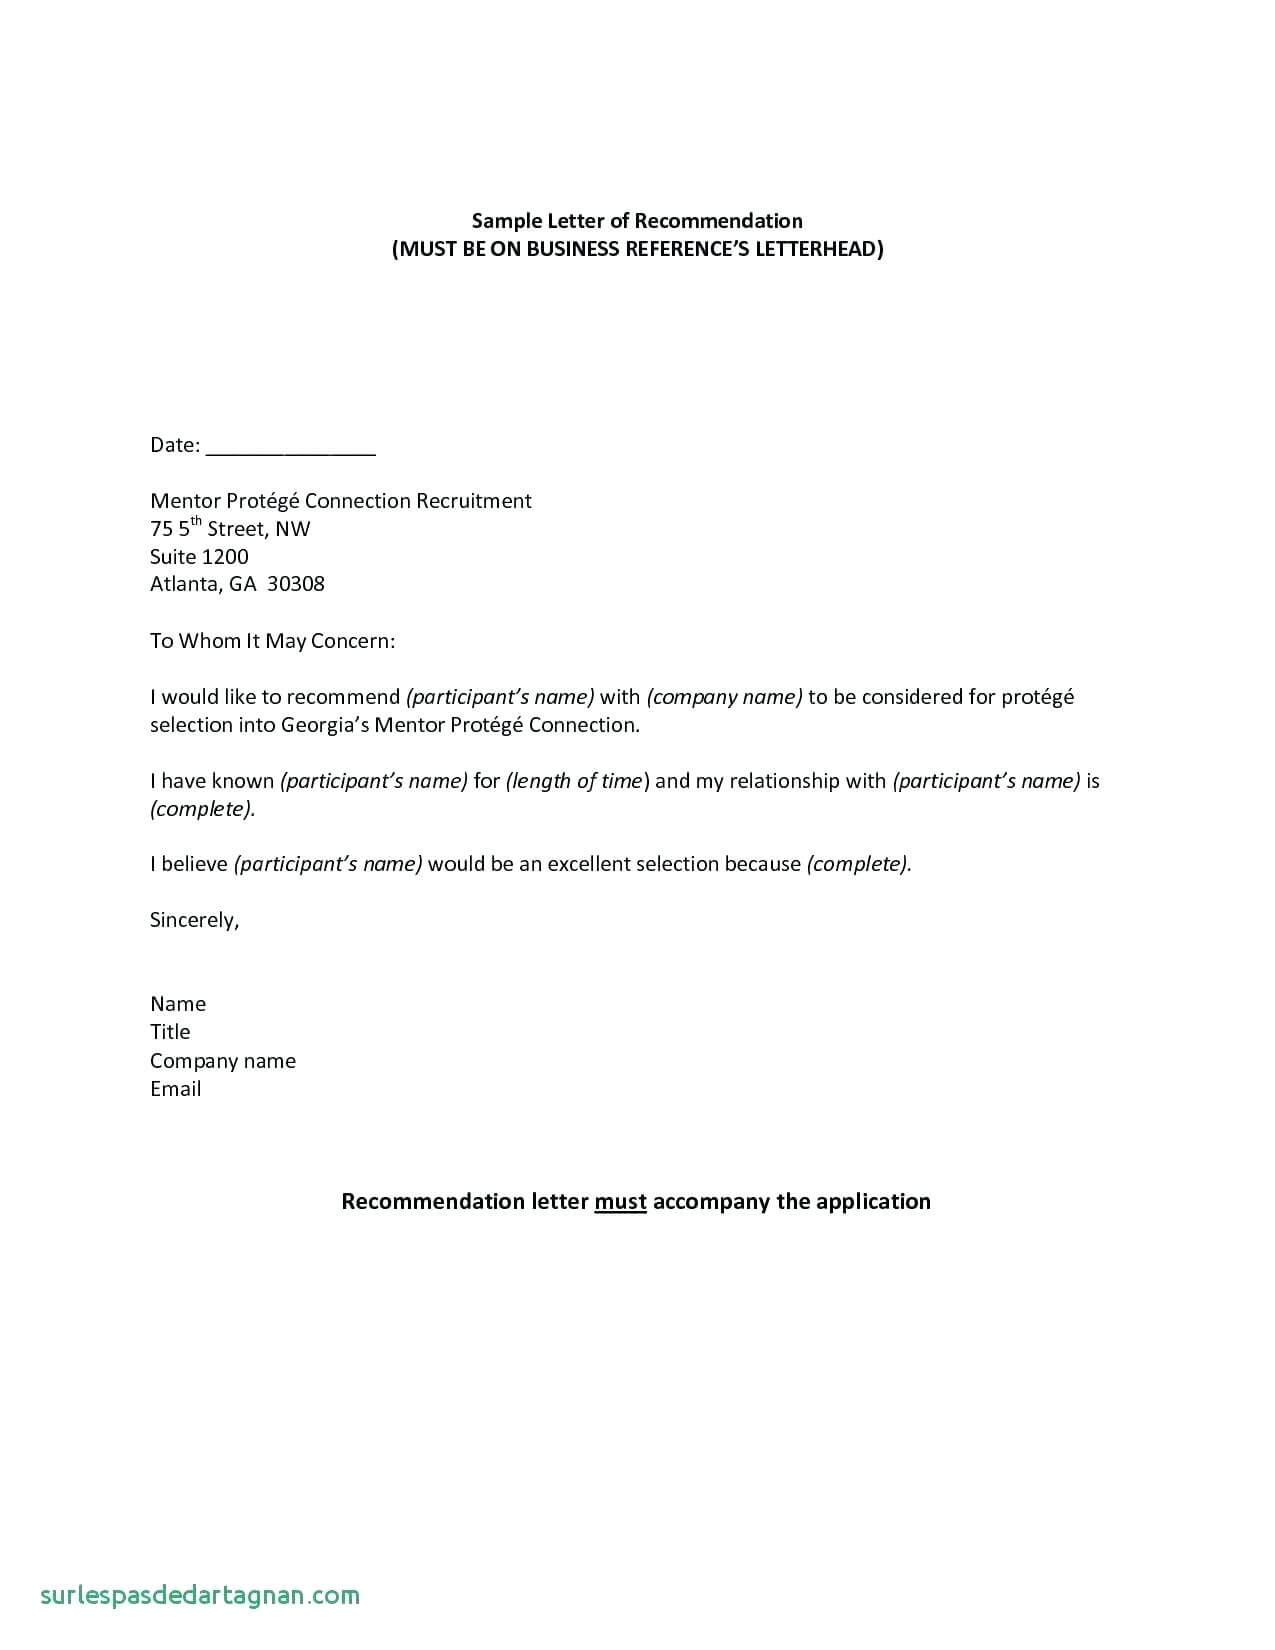 Phenomenal Reference Letter Templates Word Template Ideas With Business Reference Template Word